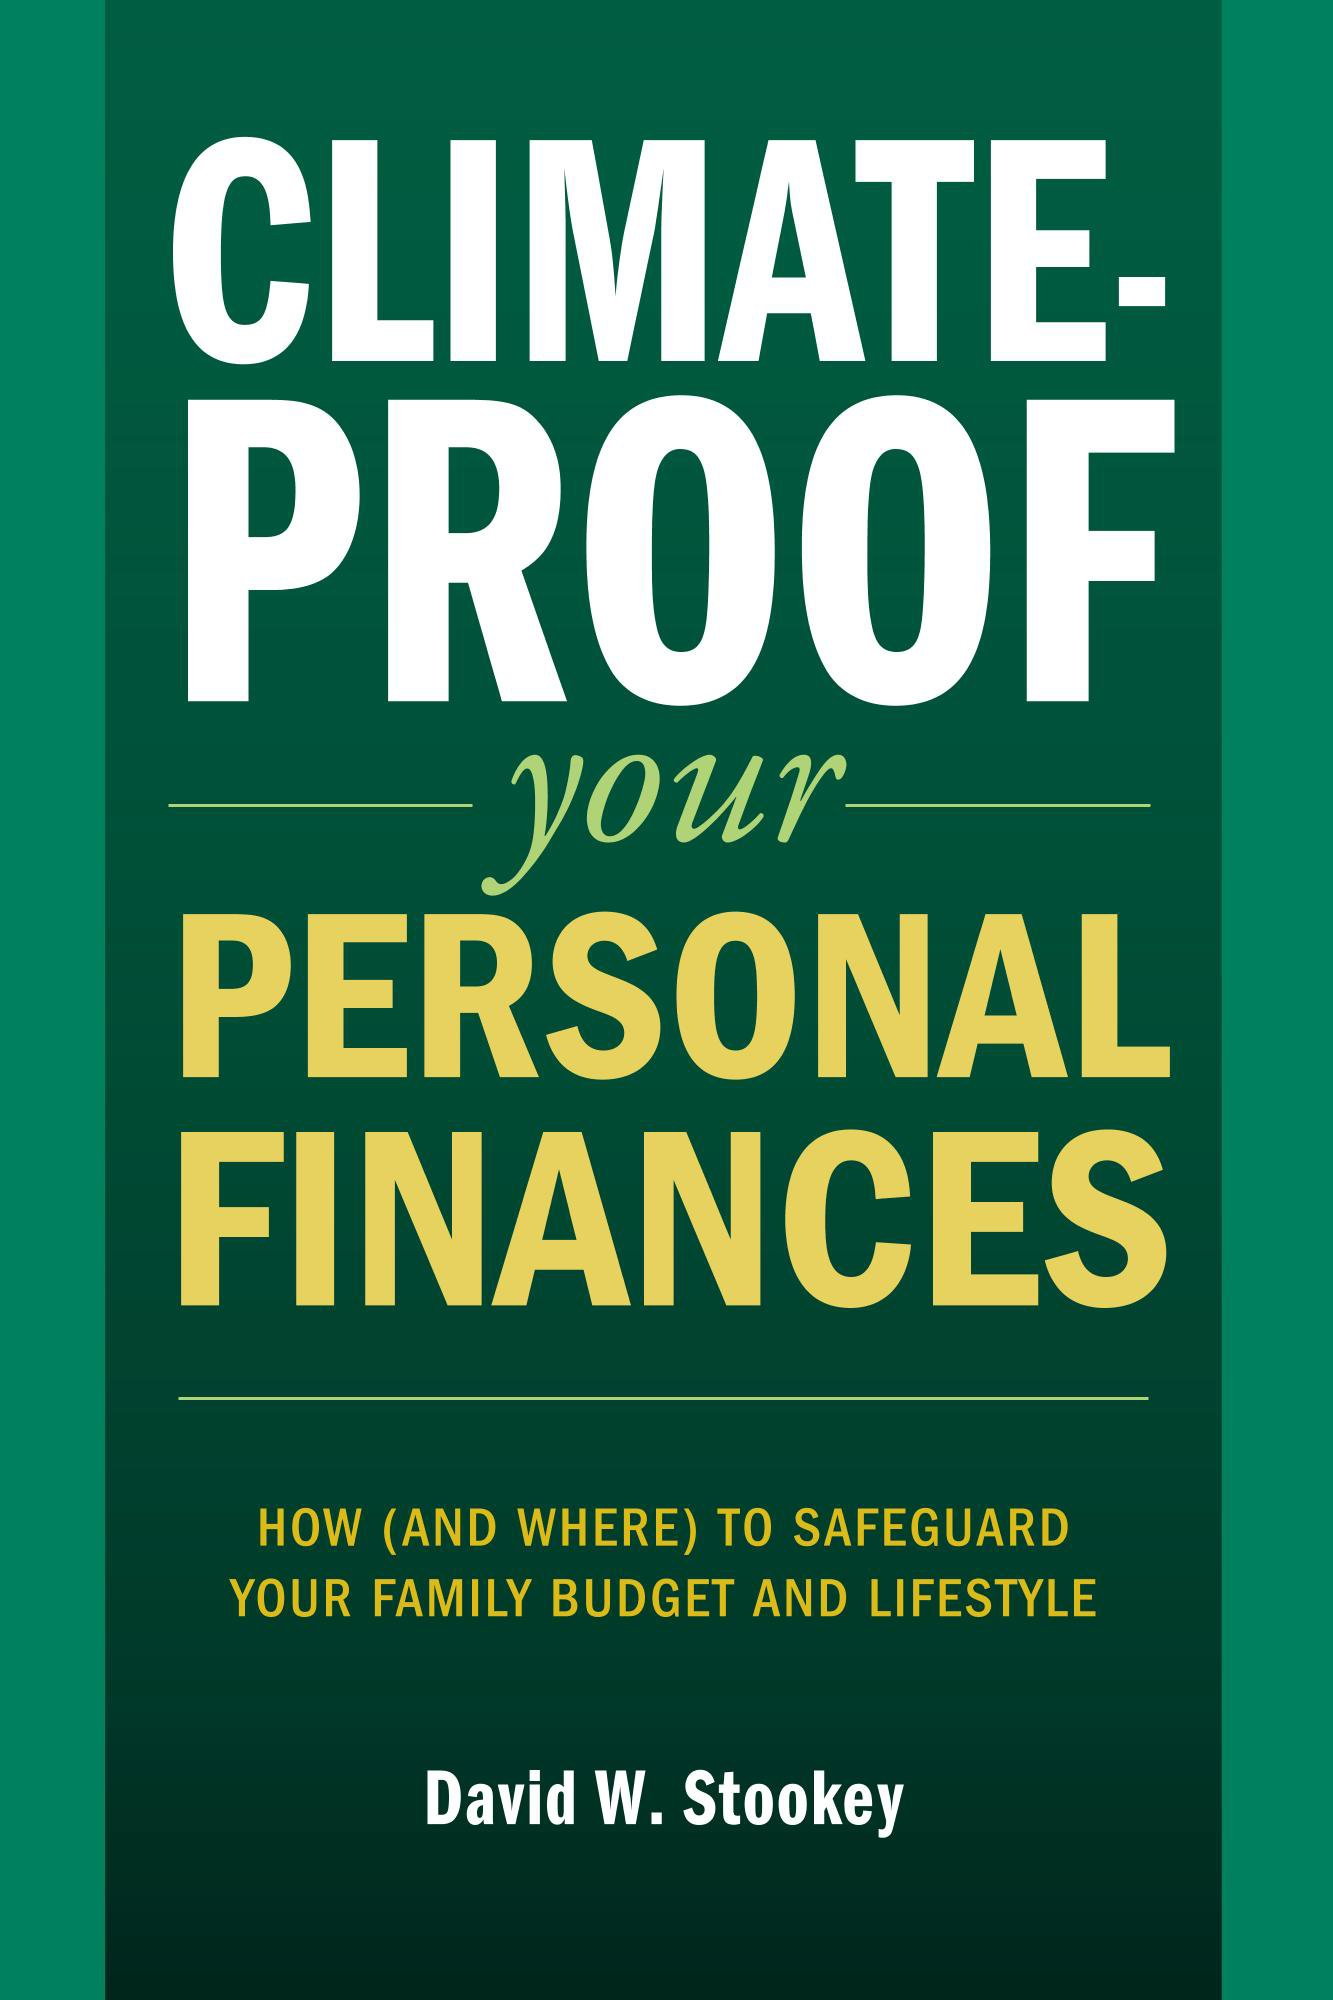 Climate-Proof Your Personal Finances: How (And Where) To Safeguard Your Family's Budget and Lifestyle